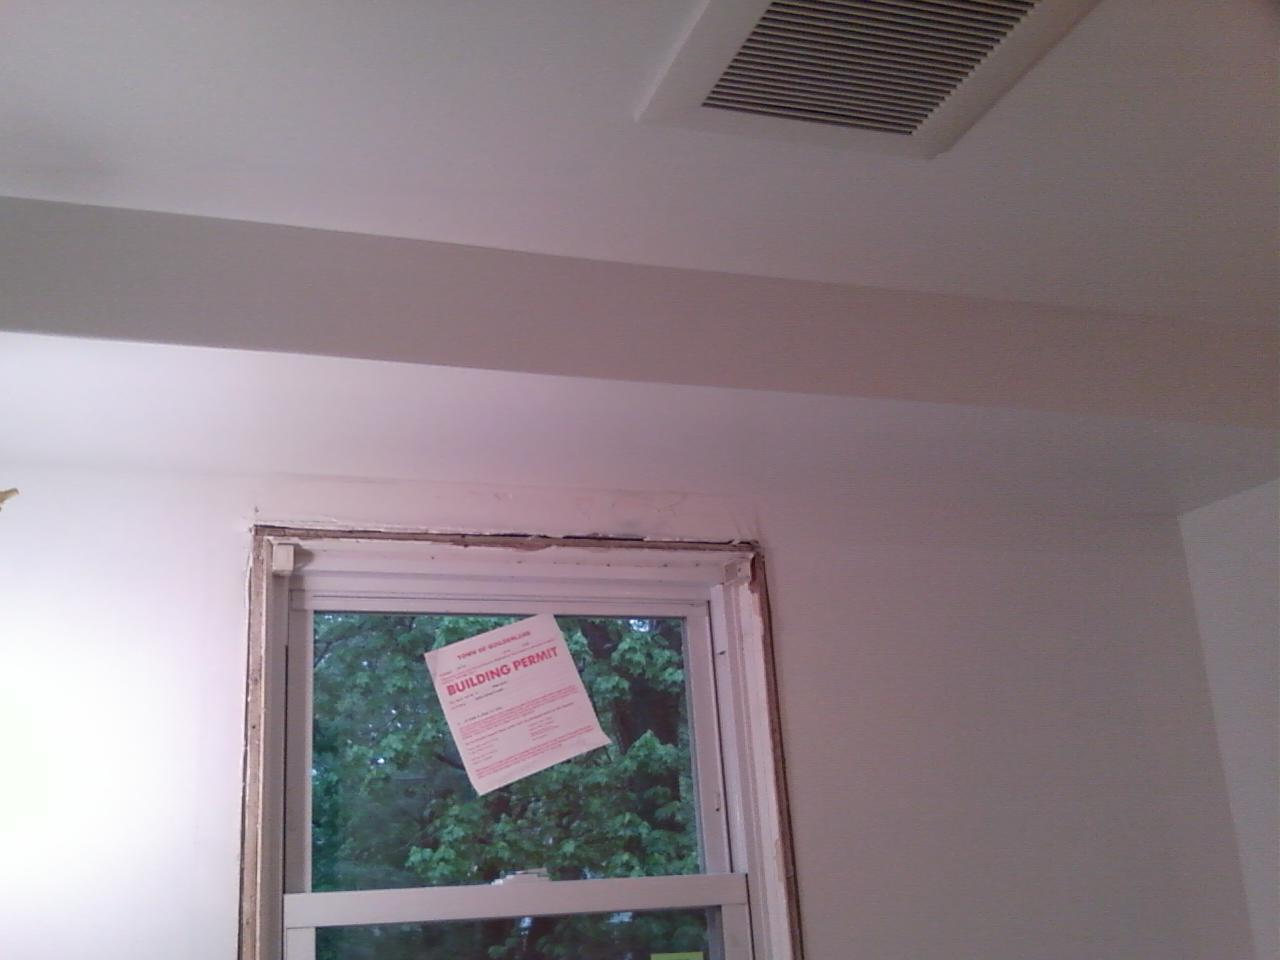 Bulkhead - wall or ceiling color?-bulkhead.jpg